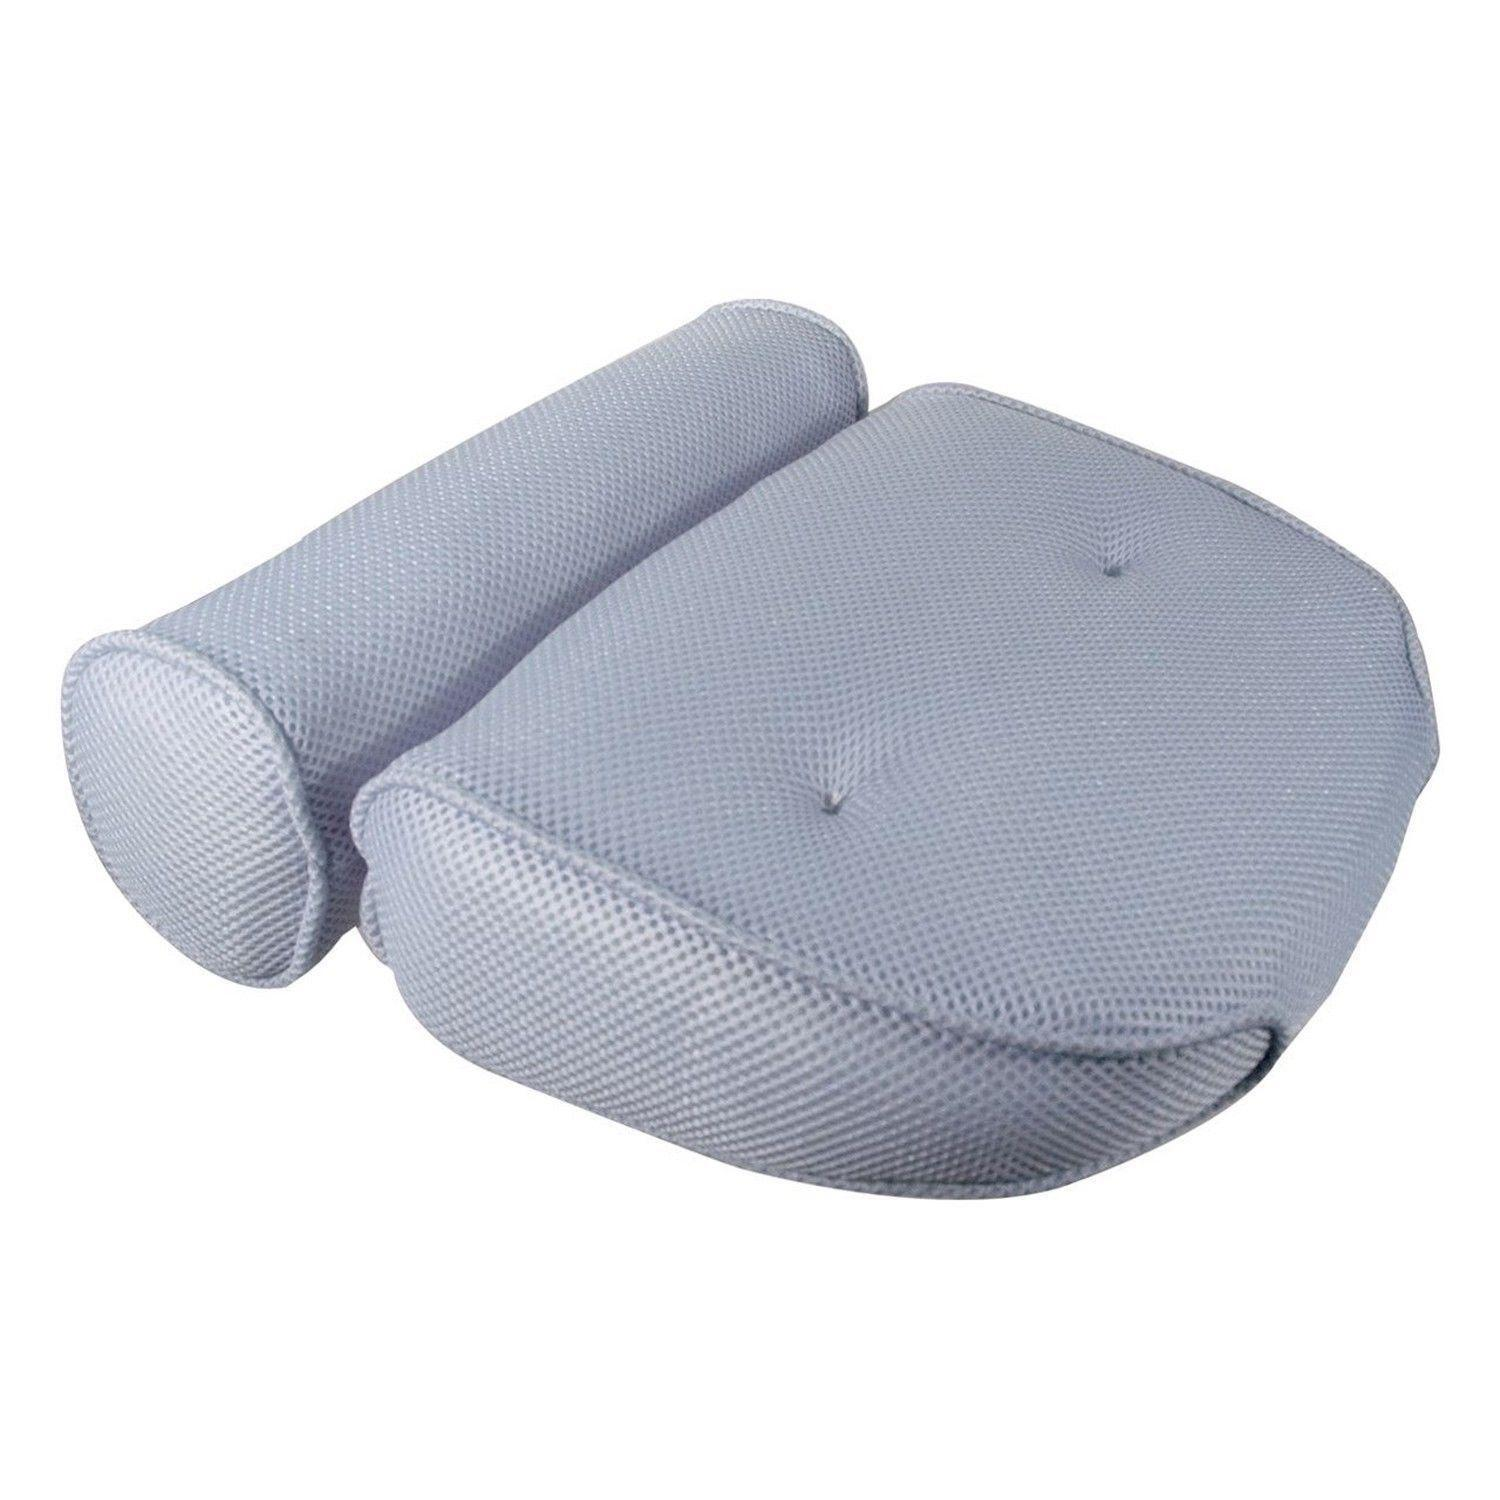 Ideaworks - Home Spa Bath Pillow 14 x 13 x 4 Neck and Back Comfort ...